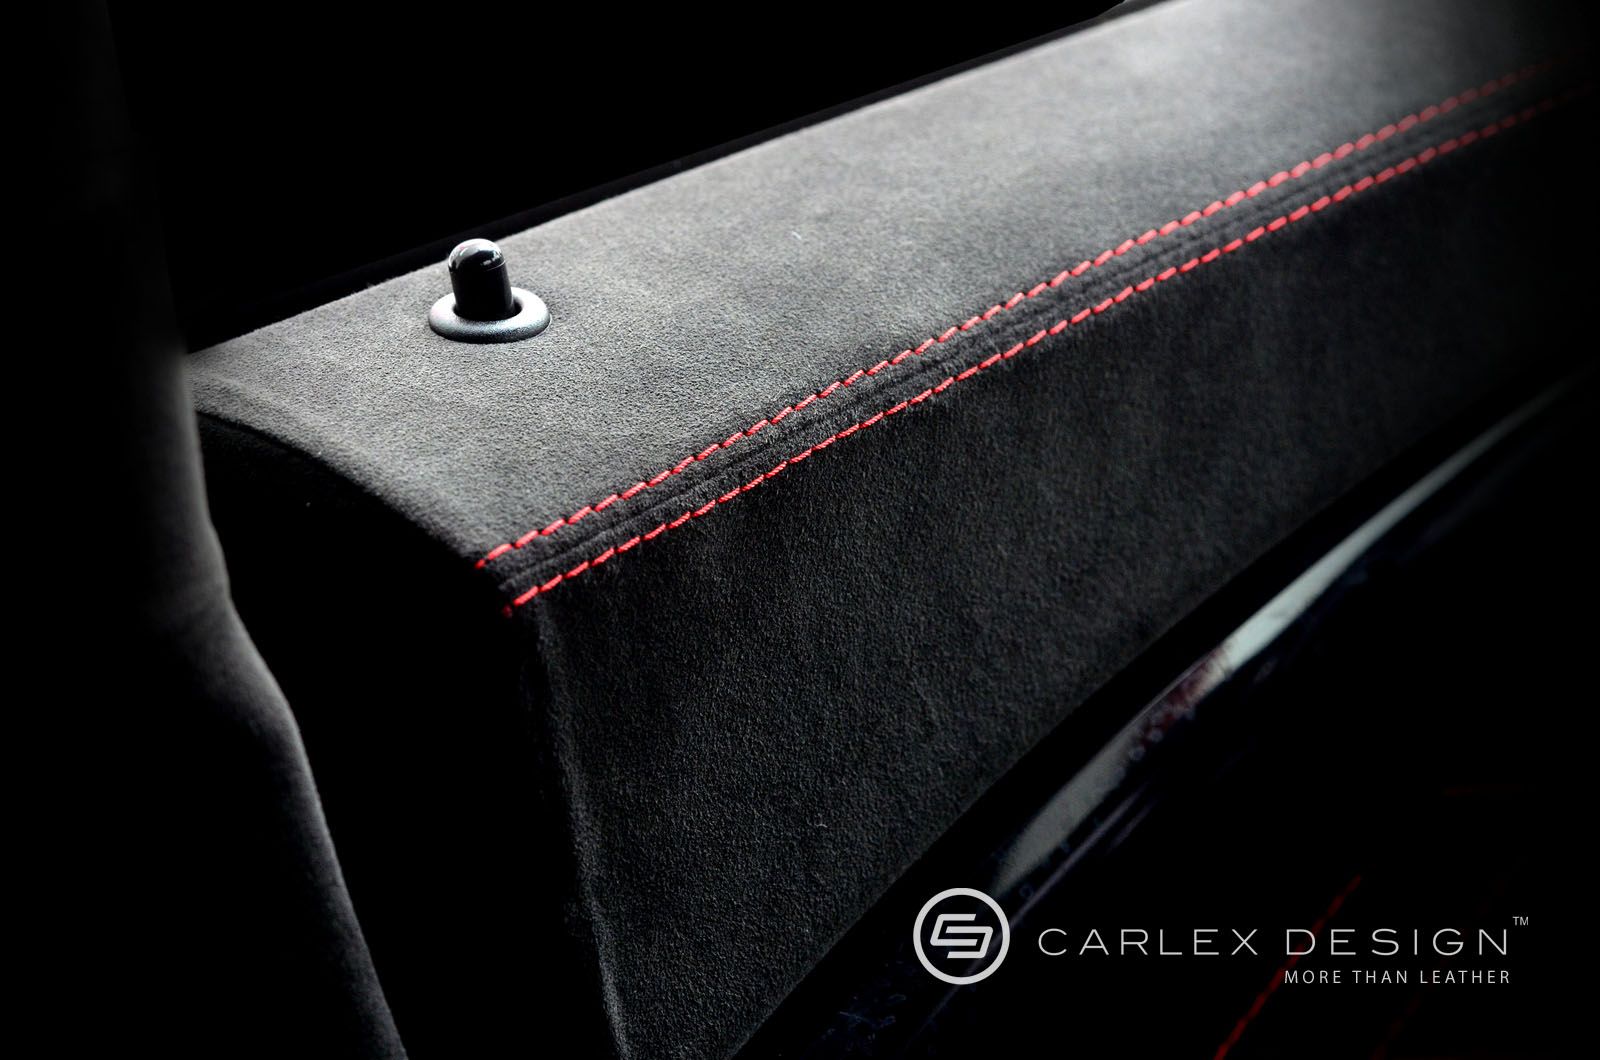 arlex Design's MINI ooper S ustom Interior - autoevolution - ^